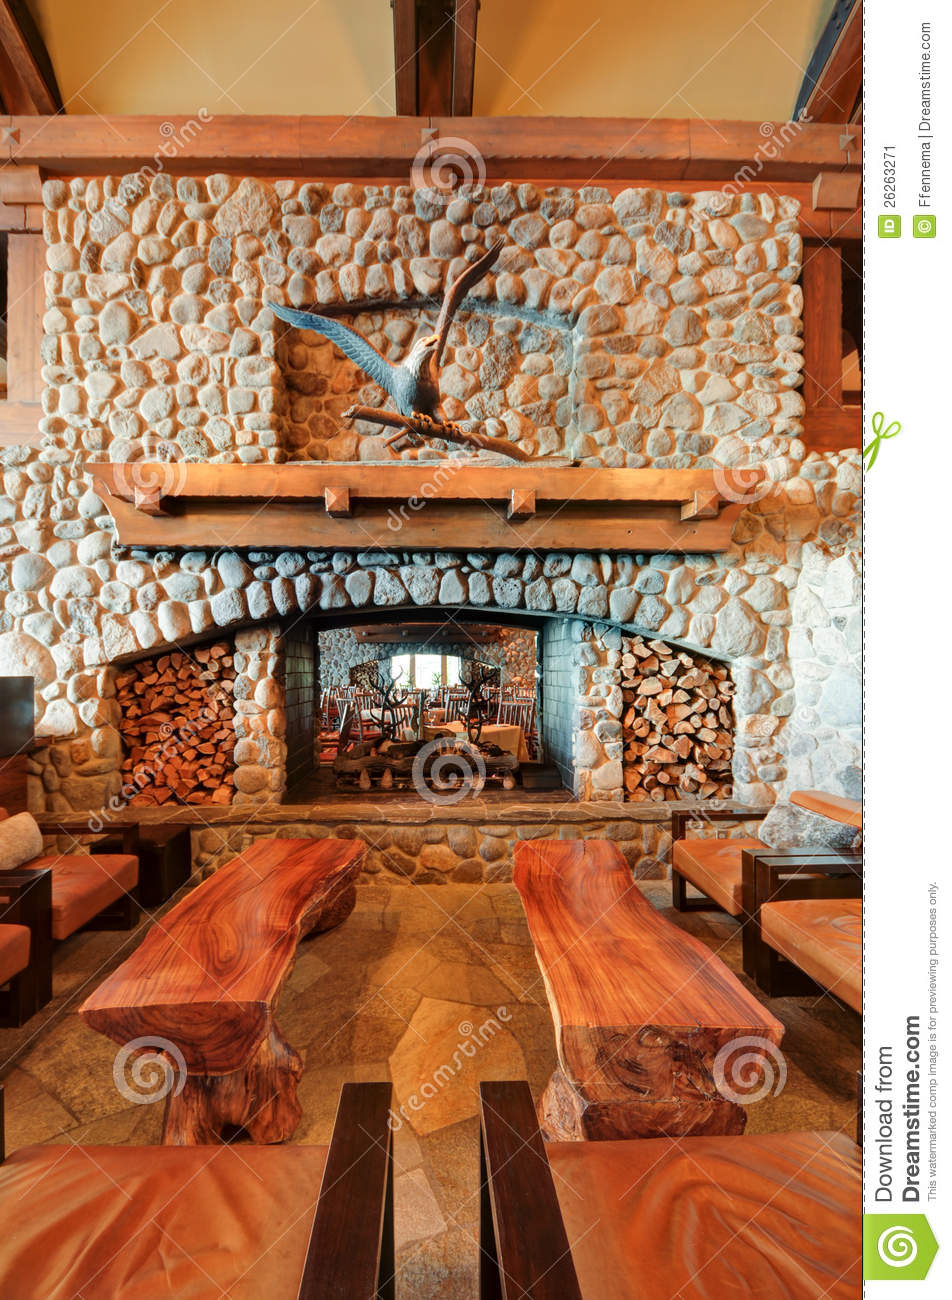 Restaurant Bar Fireplace With Wooden Benches Stock Image ...